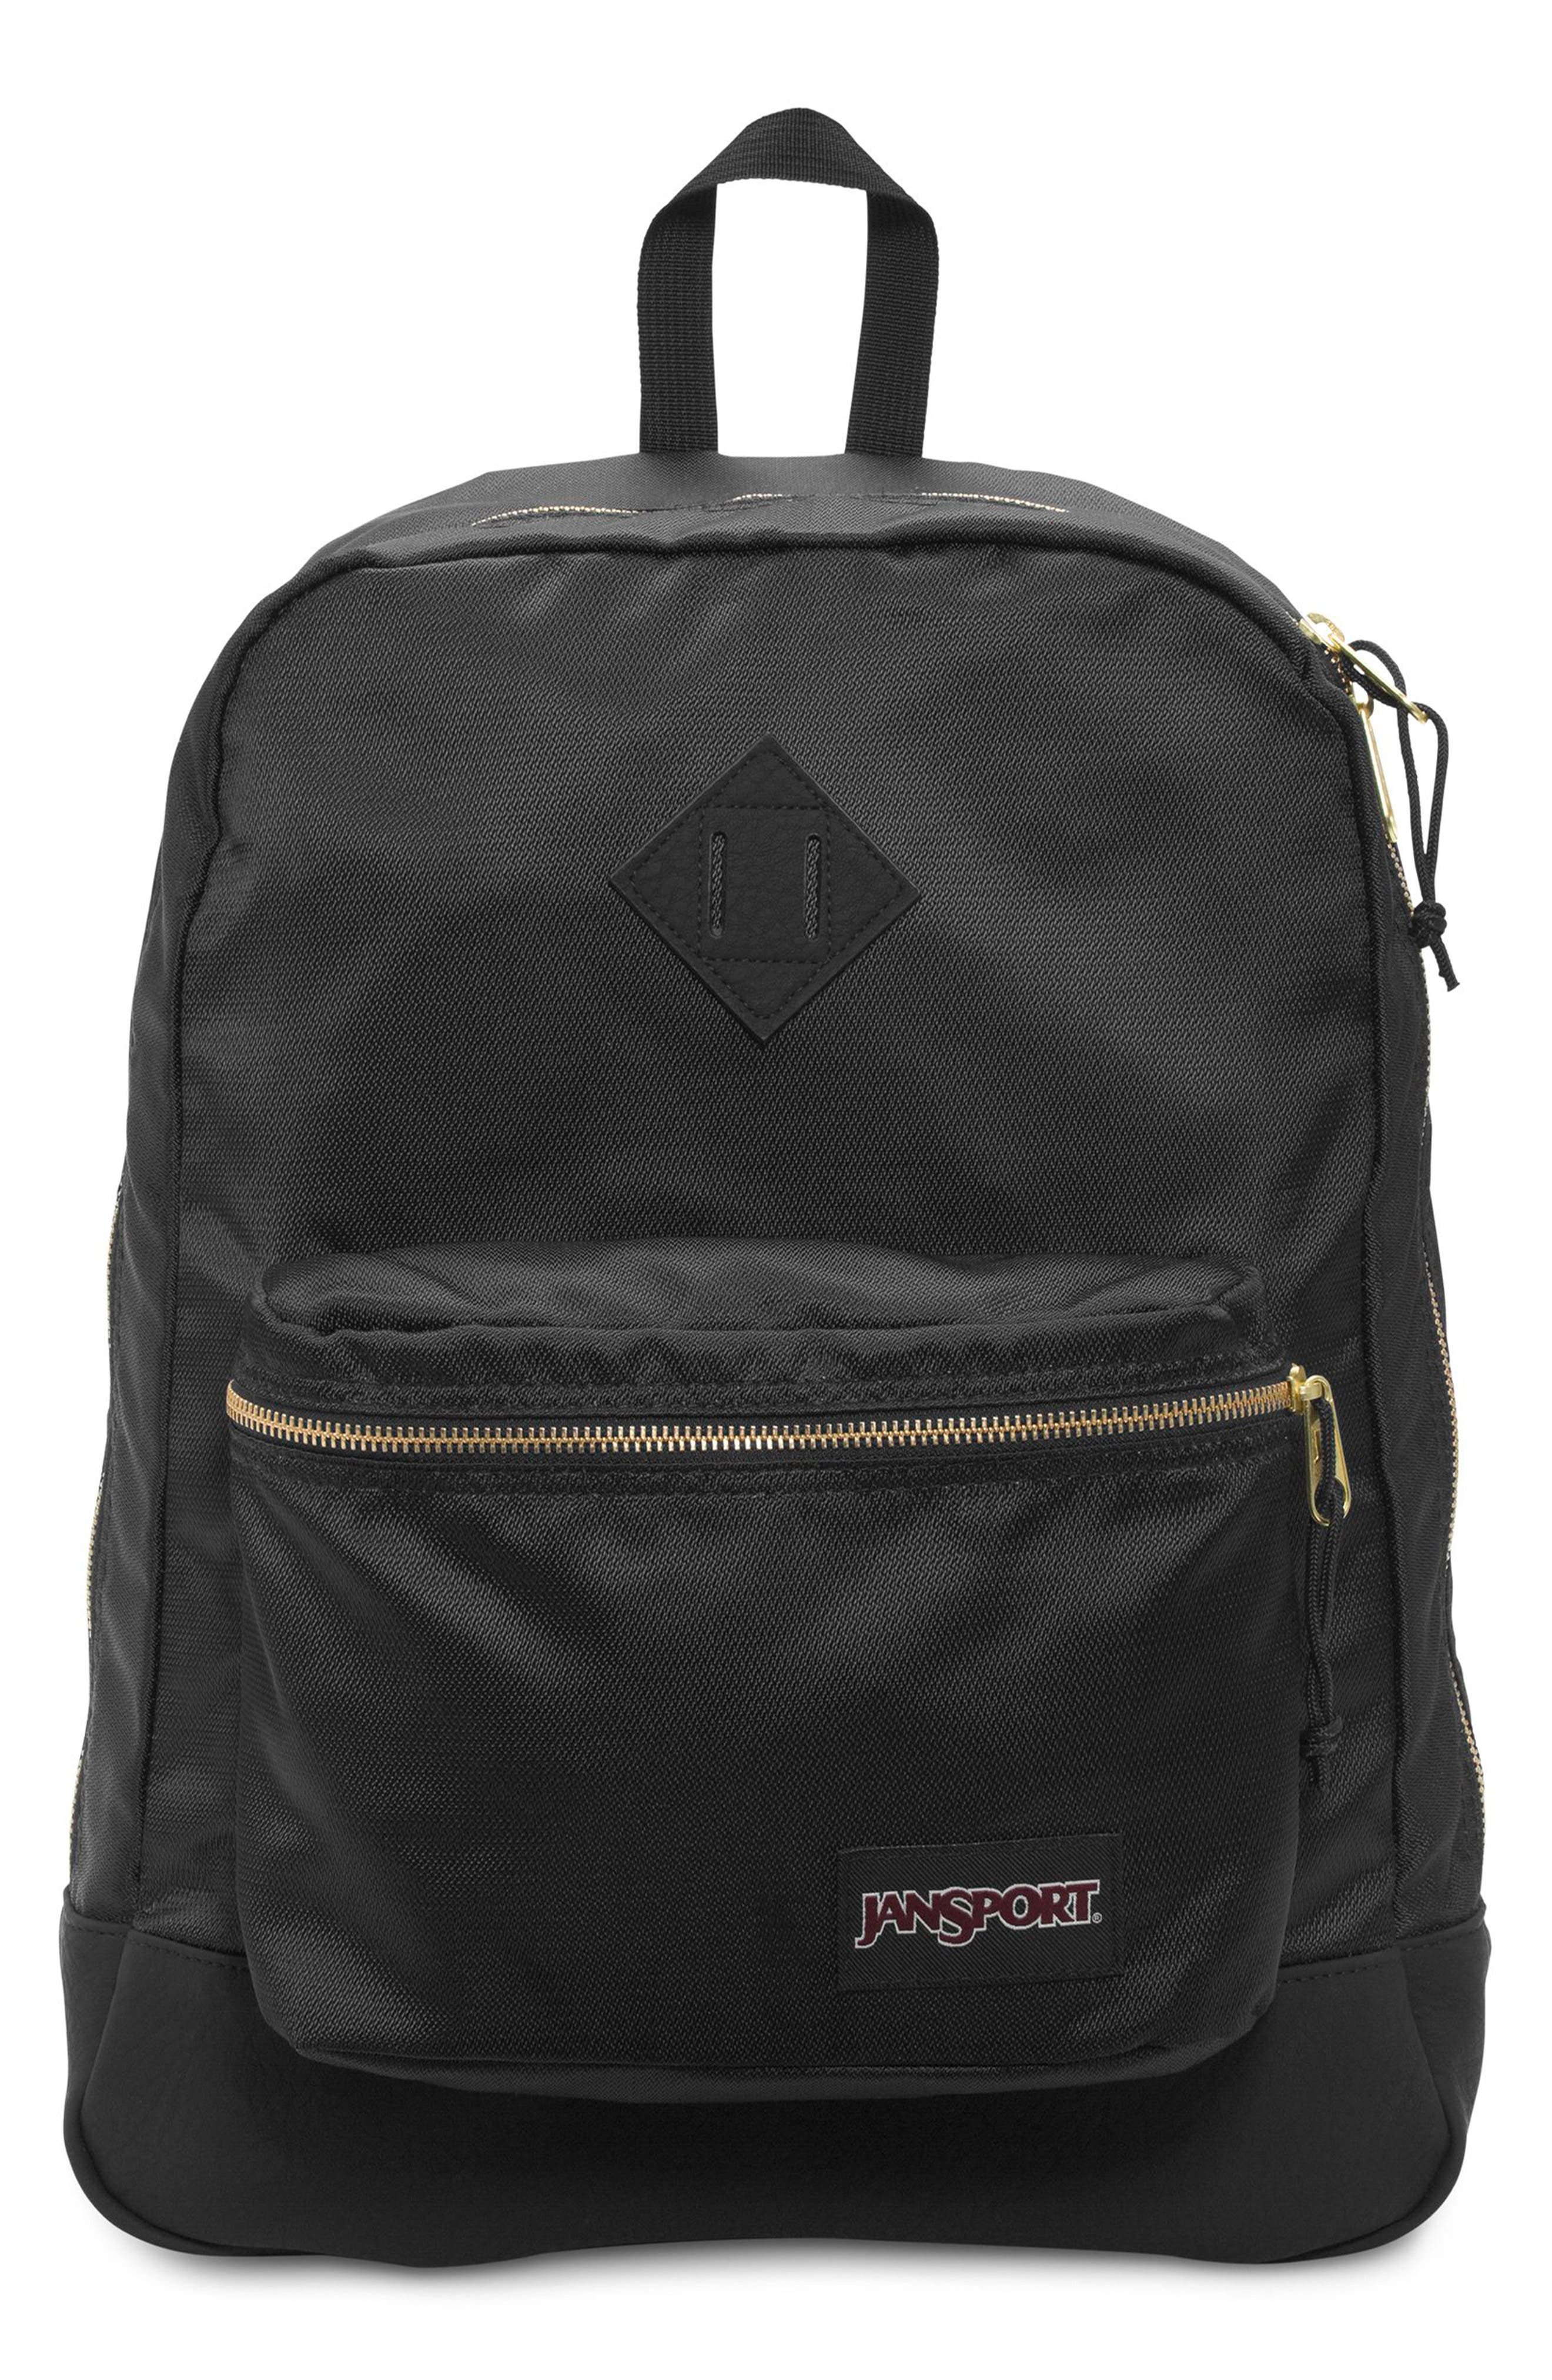 JANSPORT Super Fx Gym Backpack - Black in Black Gold